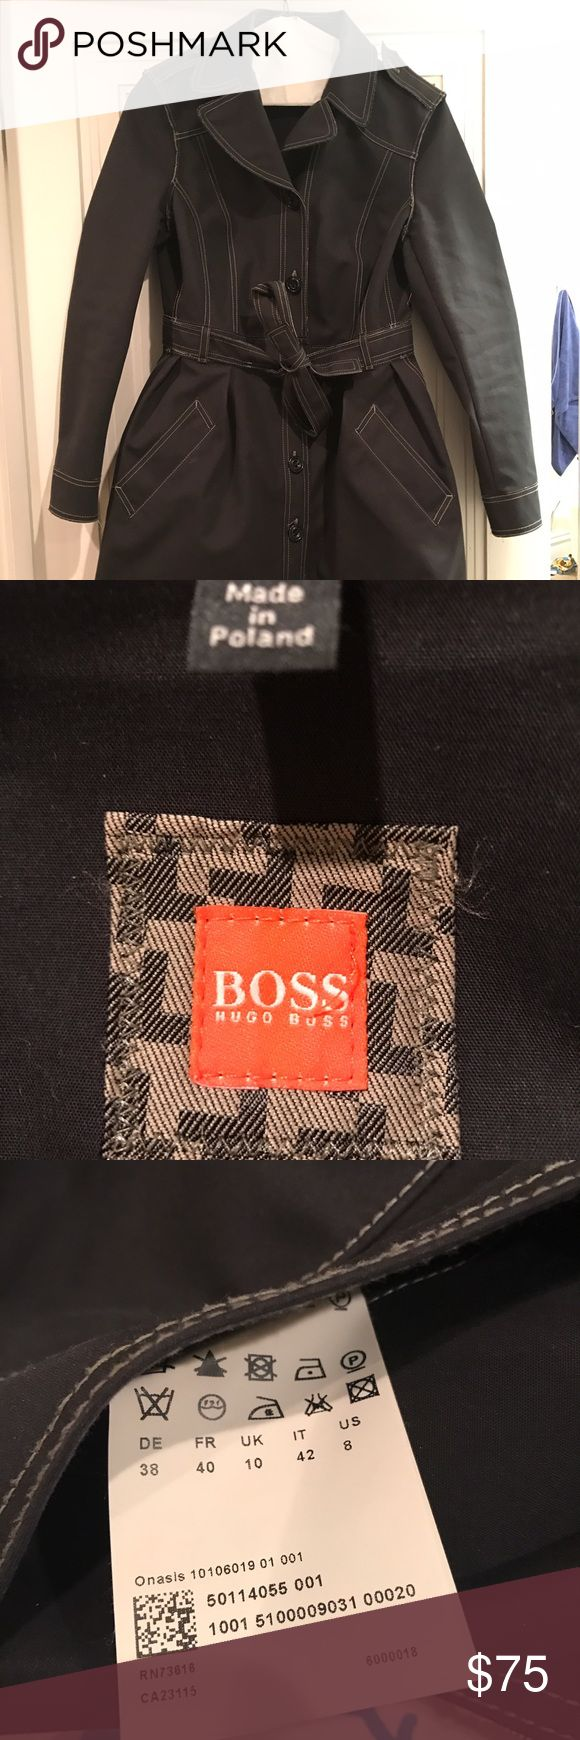 Hugo Boss trench coat Worn once! Bought without trying it on and it doesn't fit right. Missing one button on the left shoulder (see pic) but perfect condition otherwise! Great winter rain/snow jacket! BOSS ORANGE Jackets & Coats